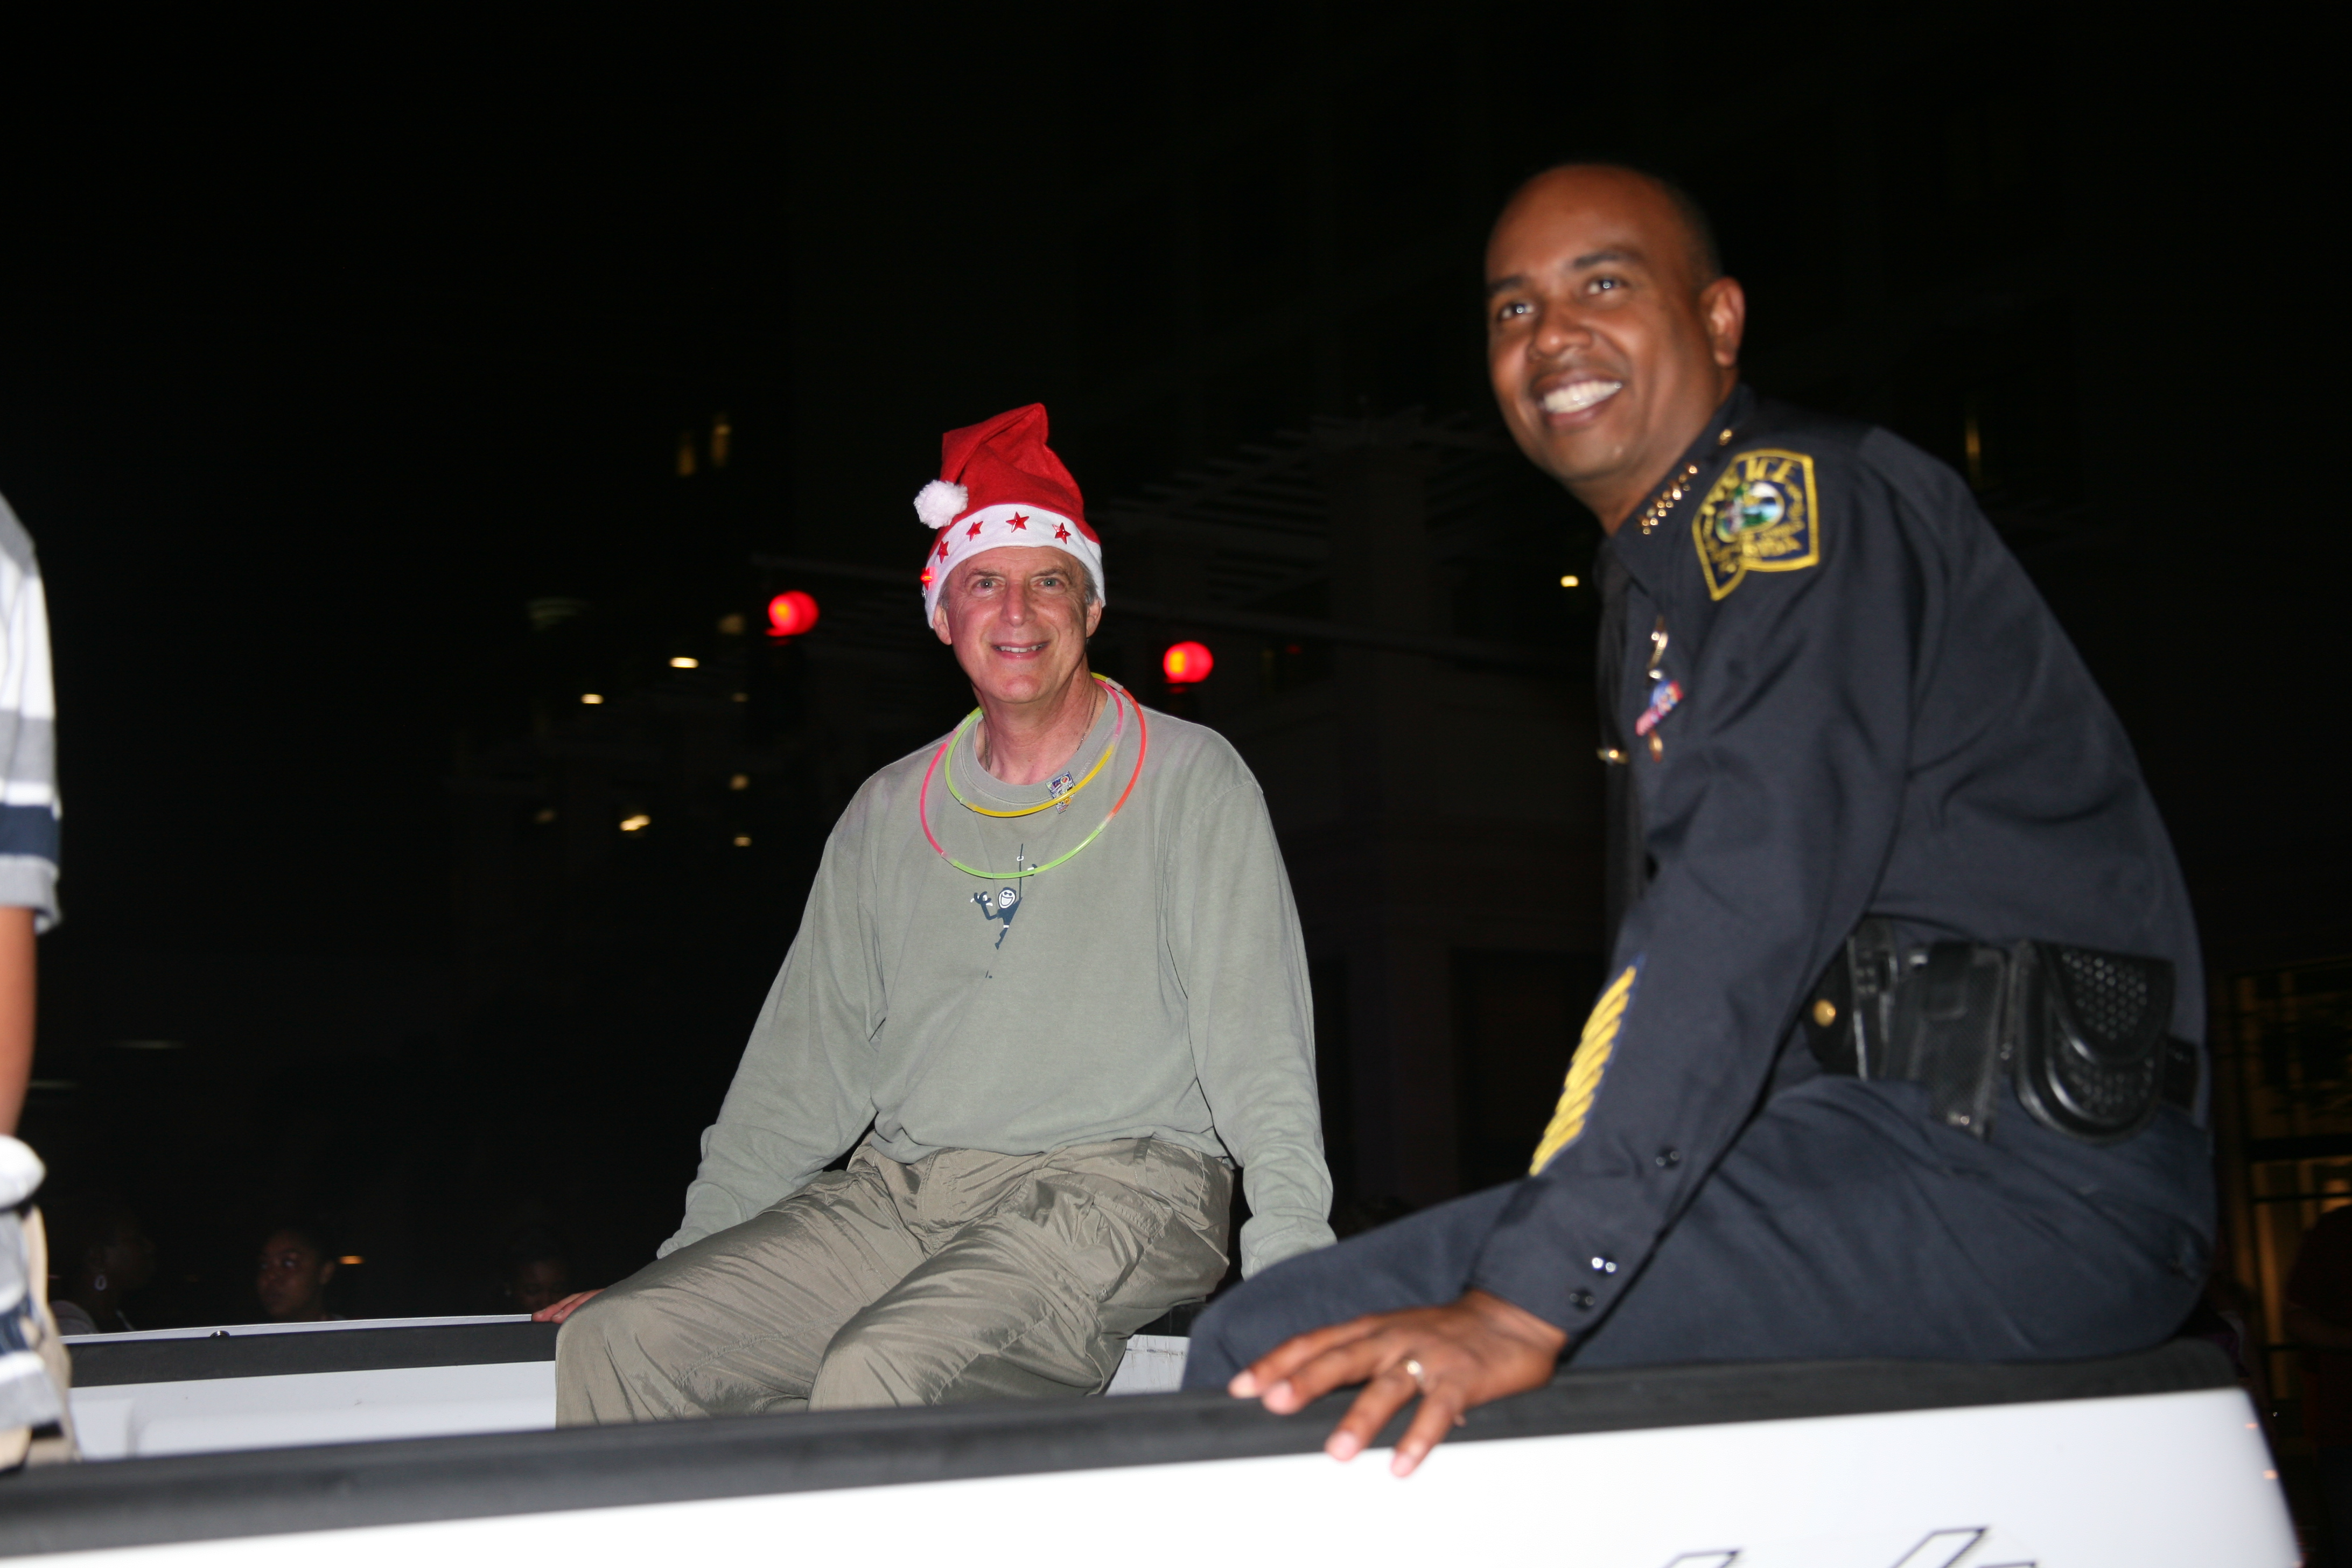 Schools Police Chief Ian A. Moffett and School Board Vice Chair Larry S. Feldman March On 65th Junior Orange Bowl Parade